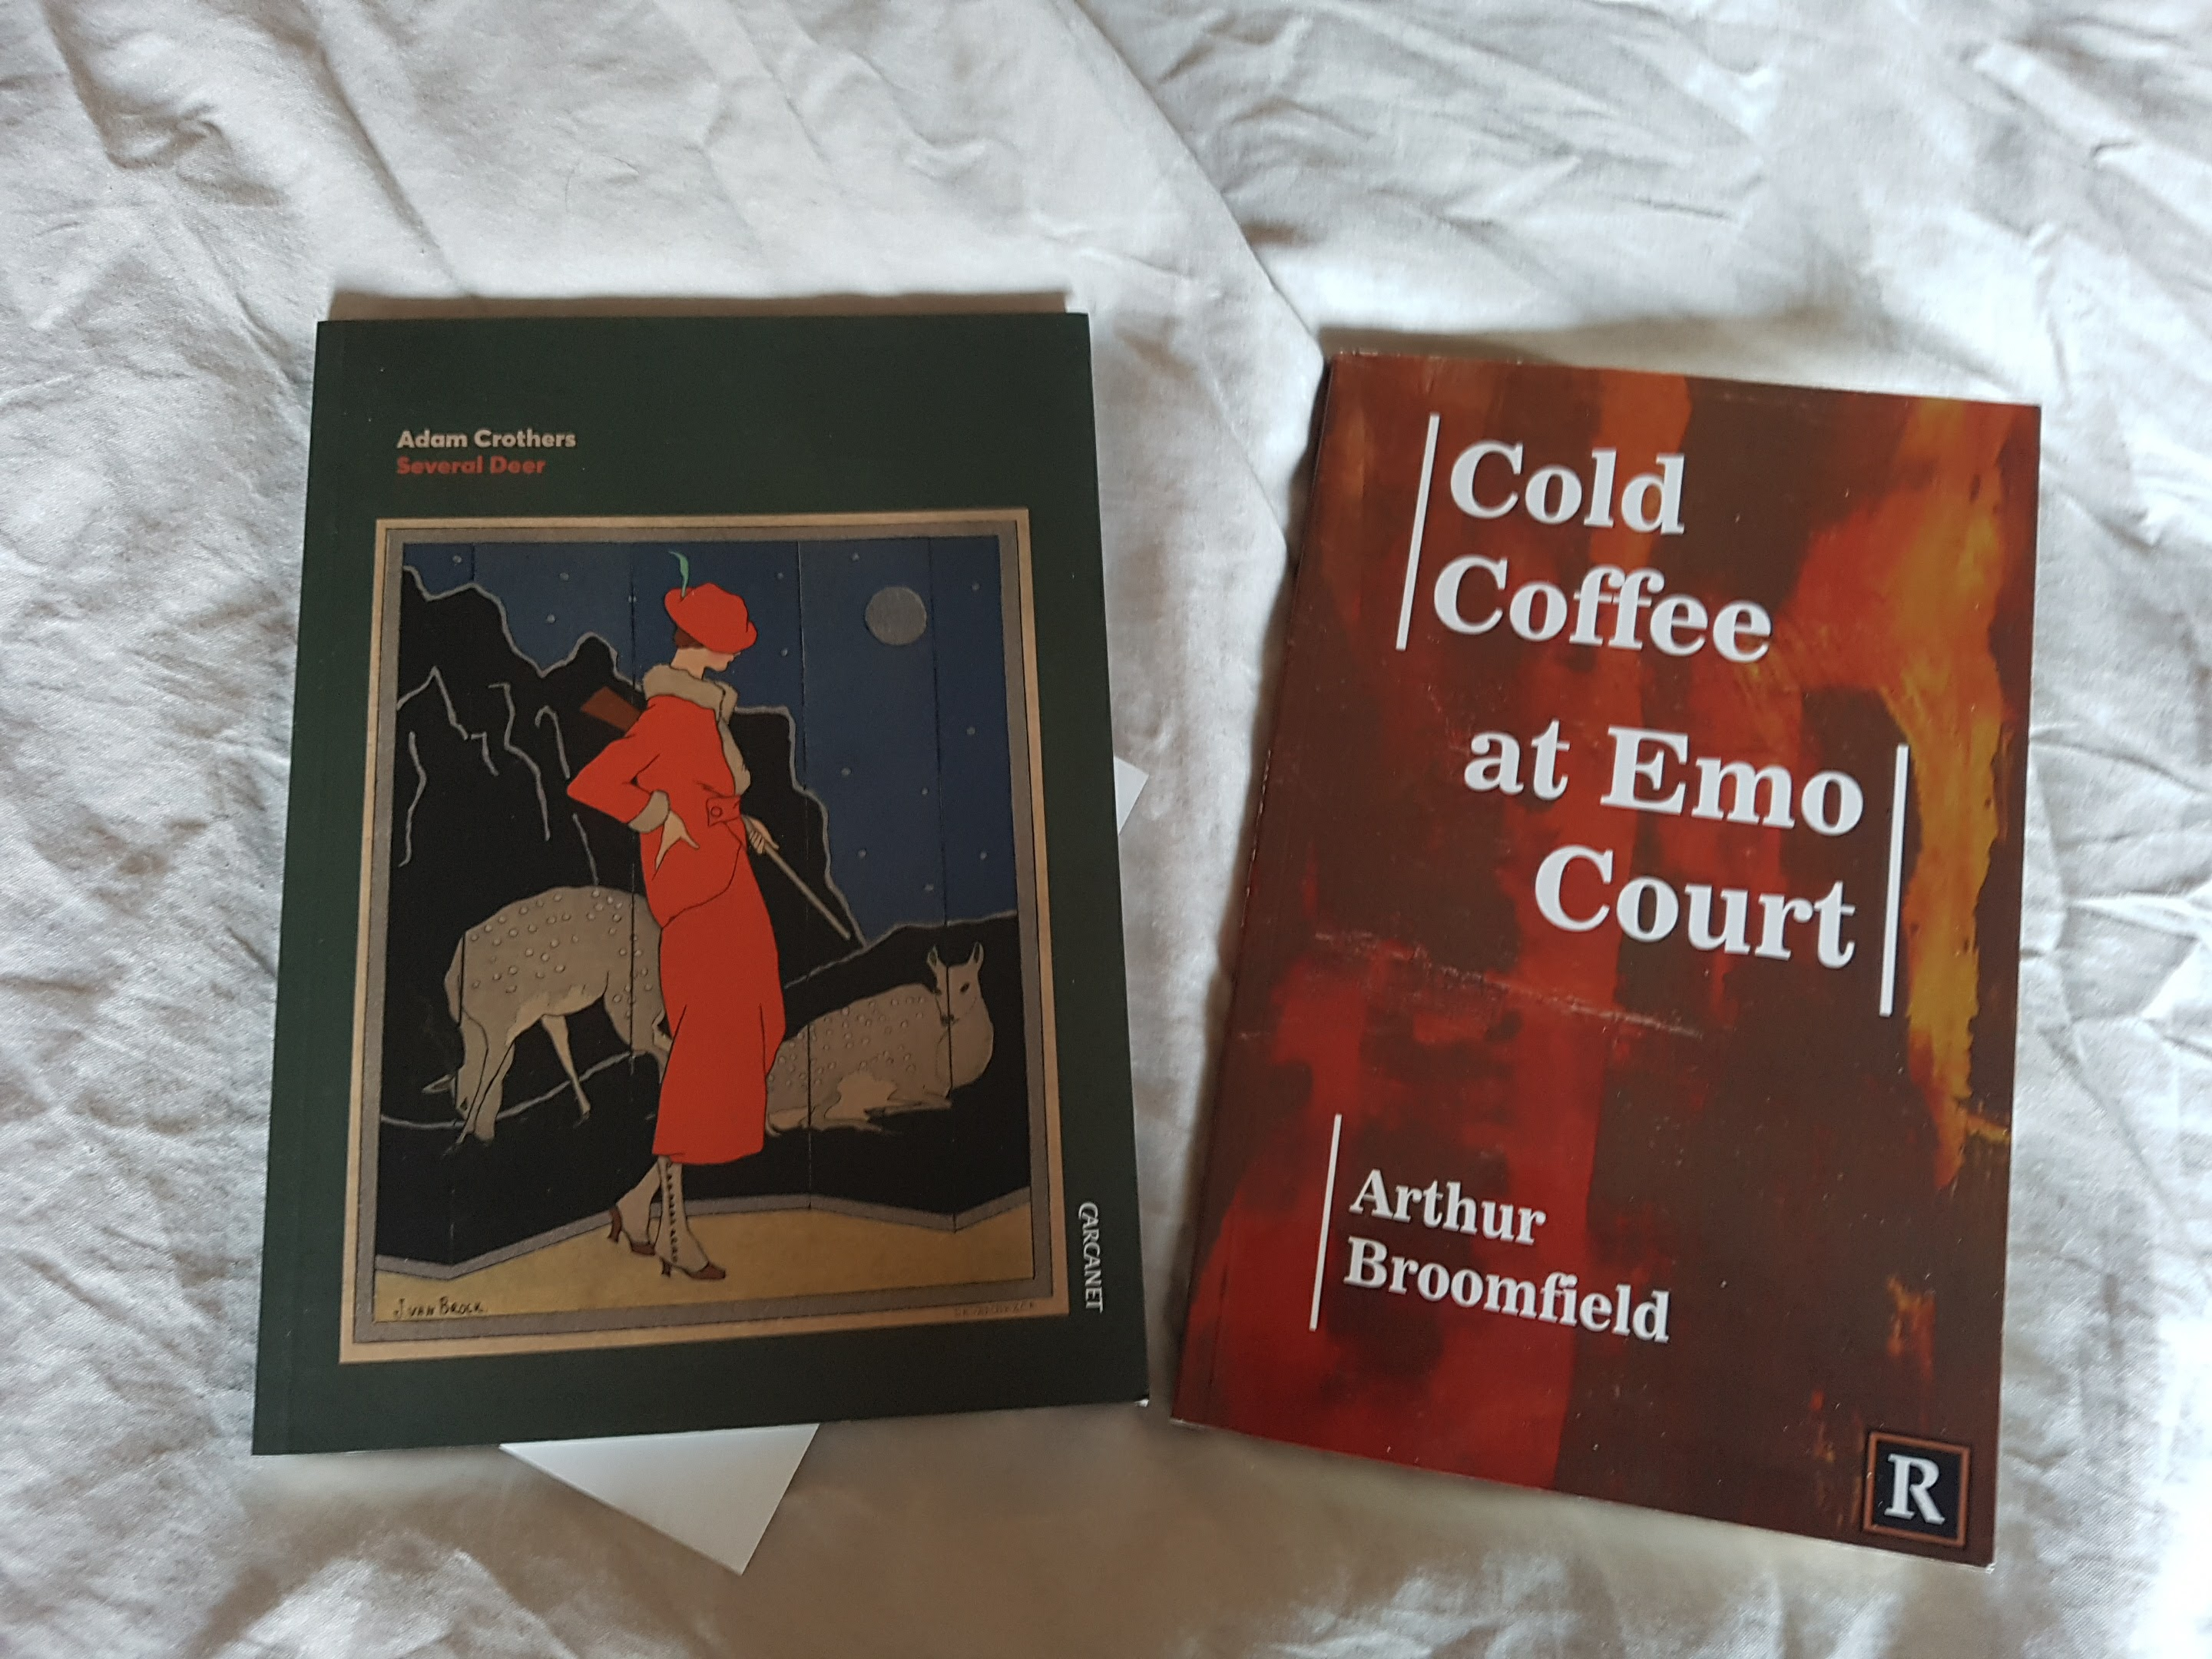 Two new books